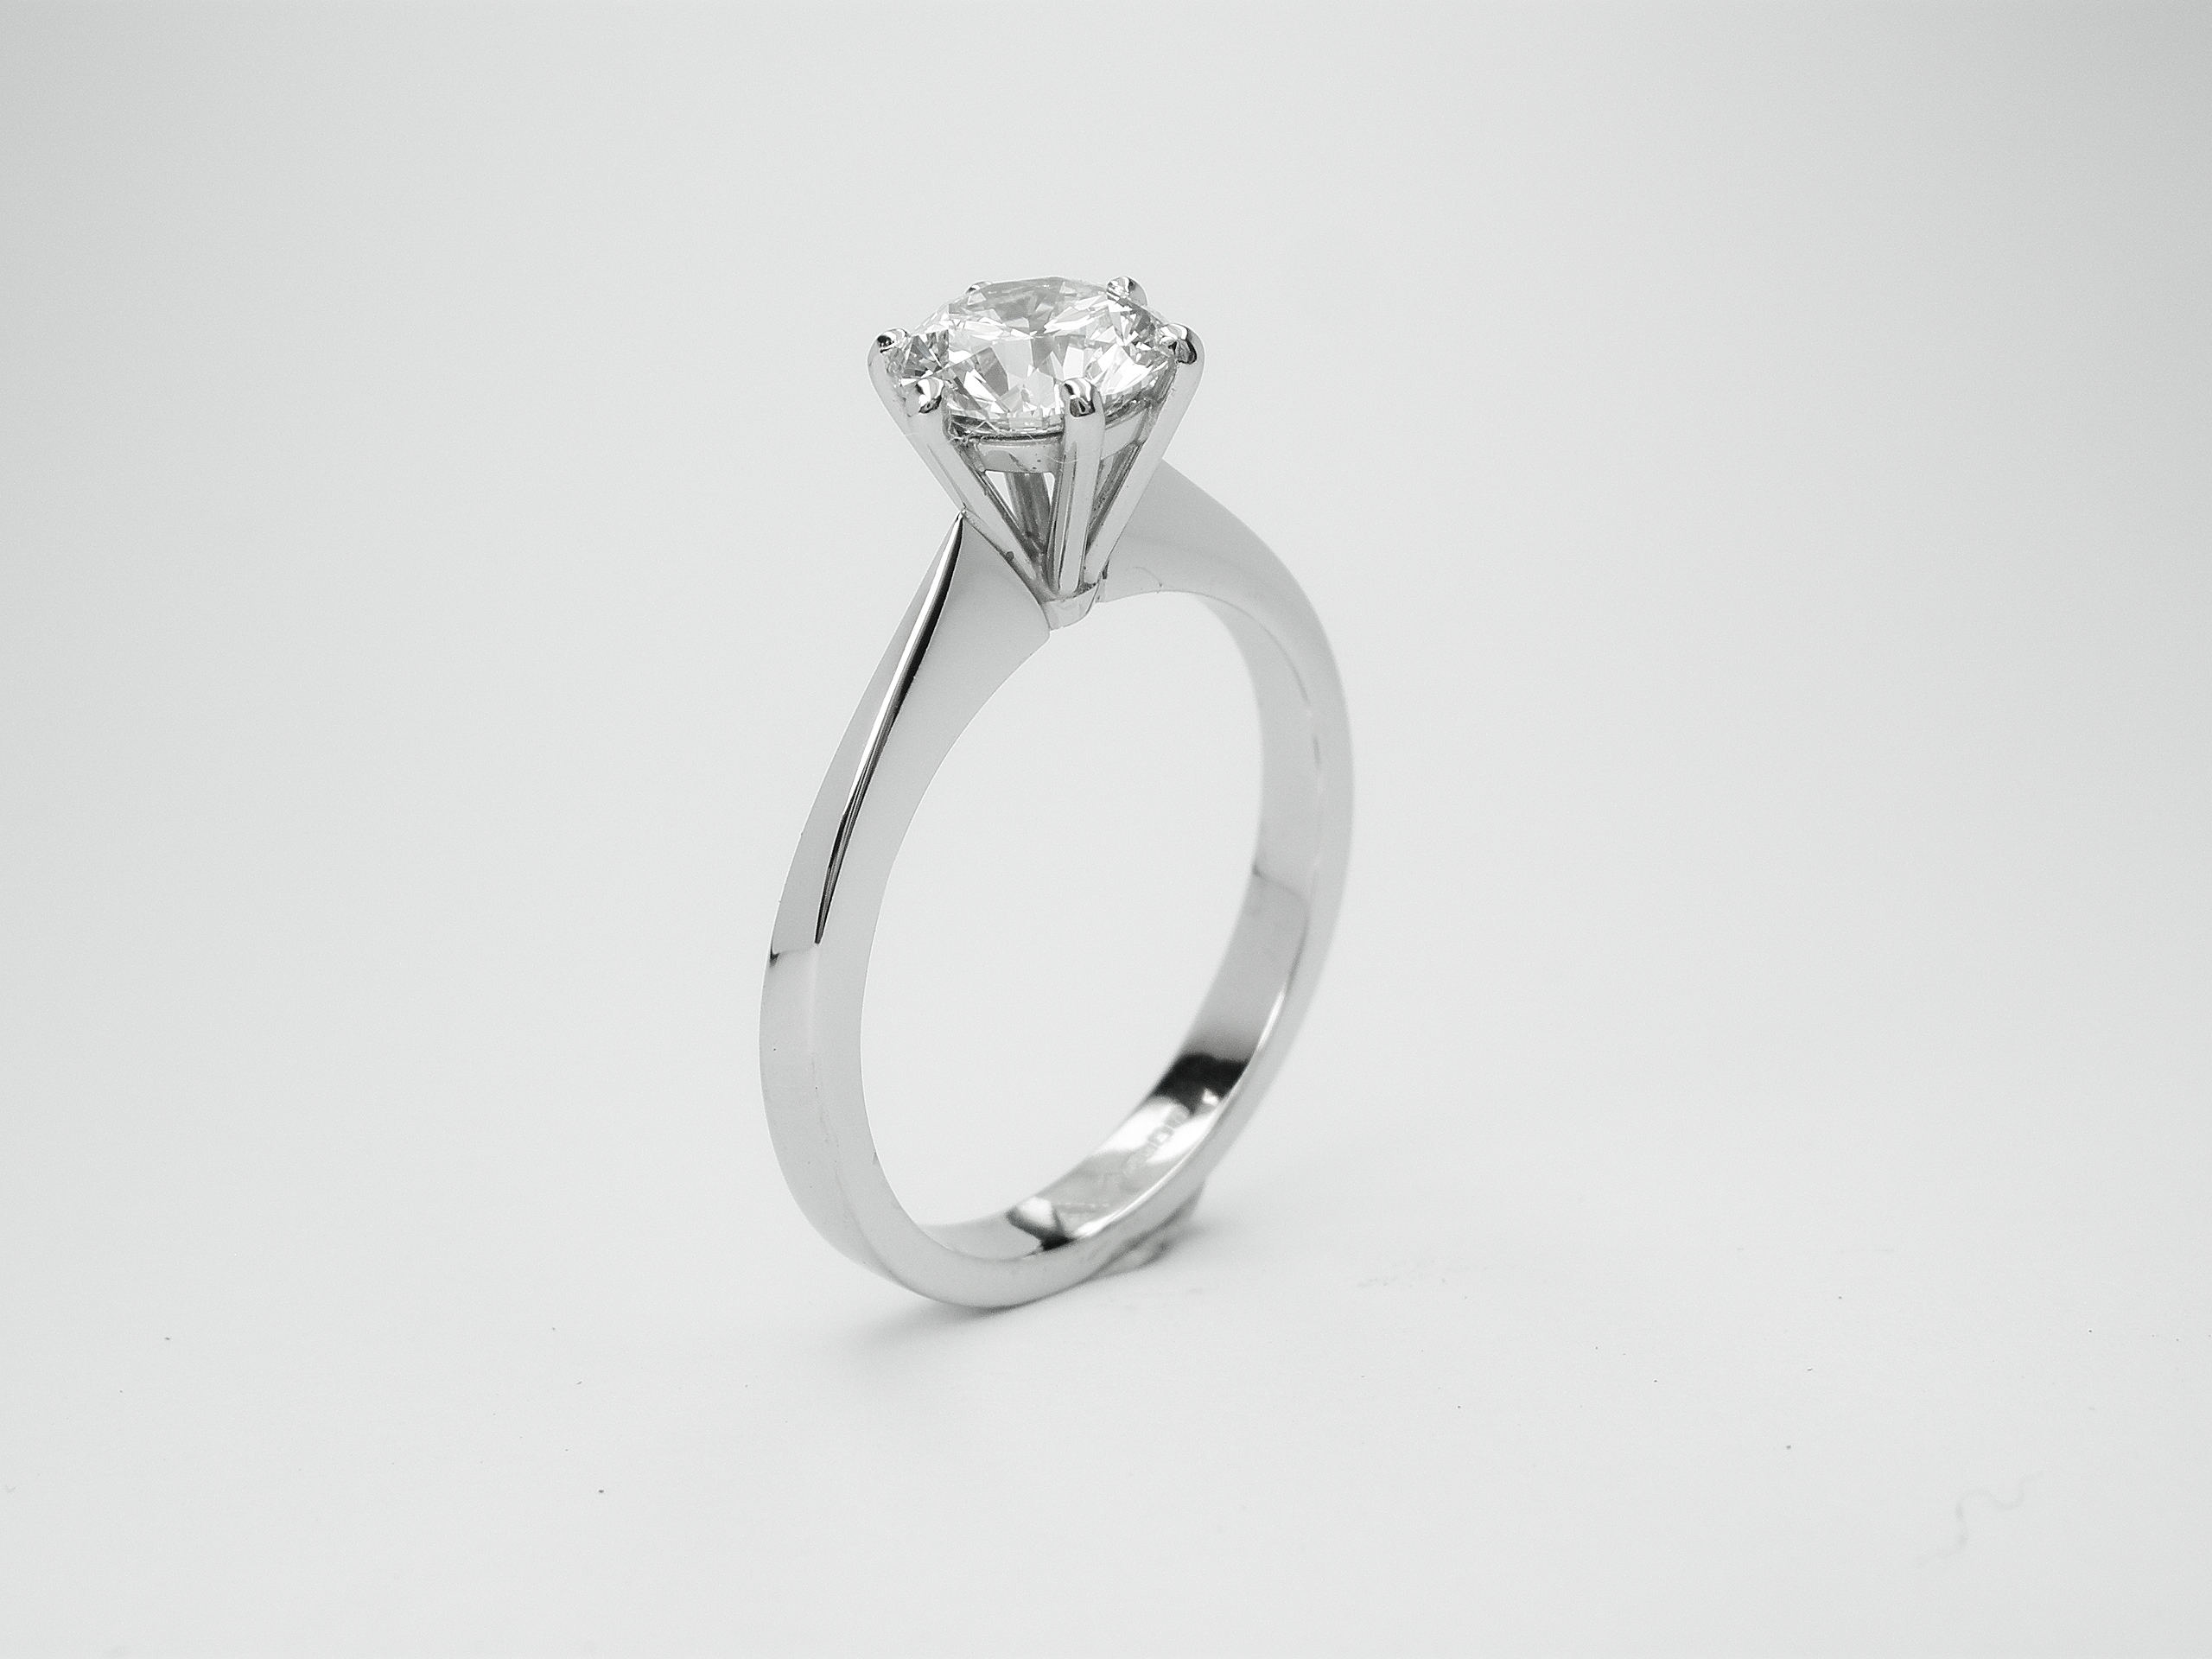 Platinum single stone 1.10ct. 'E' colour round brilliant cut diamond set in a 6 claw peg setting & knife edged shank ring. Ideal for diamonds from 0.33ct. to 5.00cts.